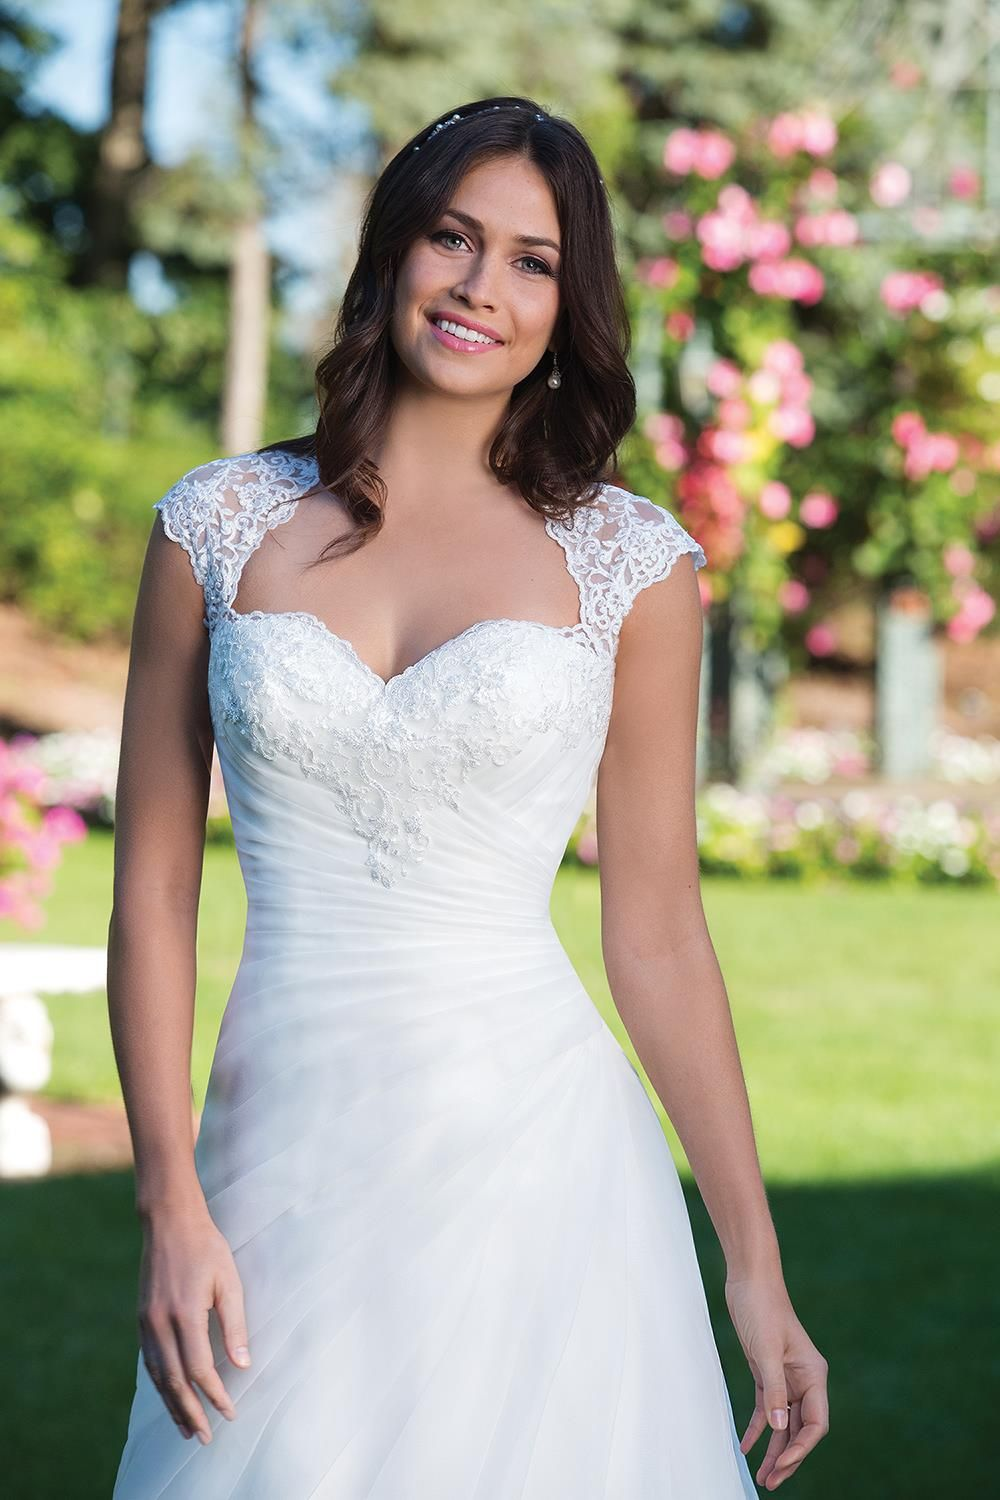 wedding dress from sincerity bridal hitched selection